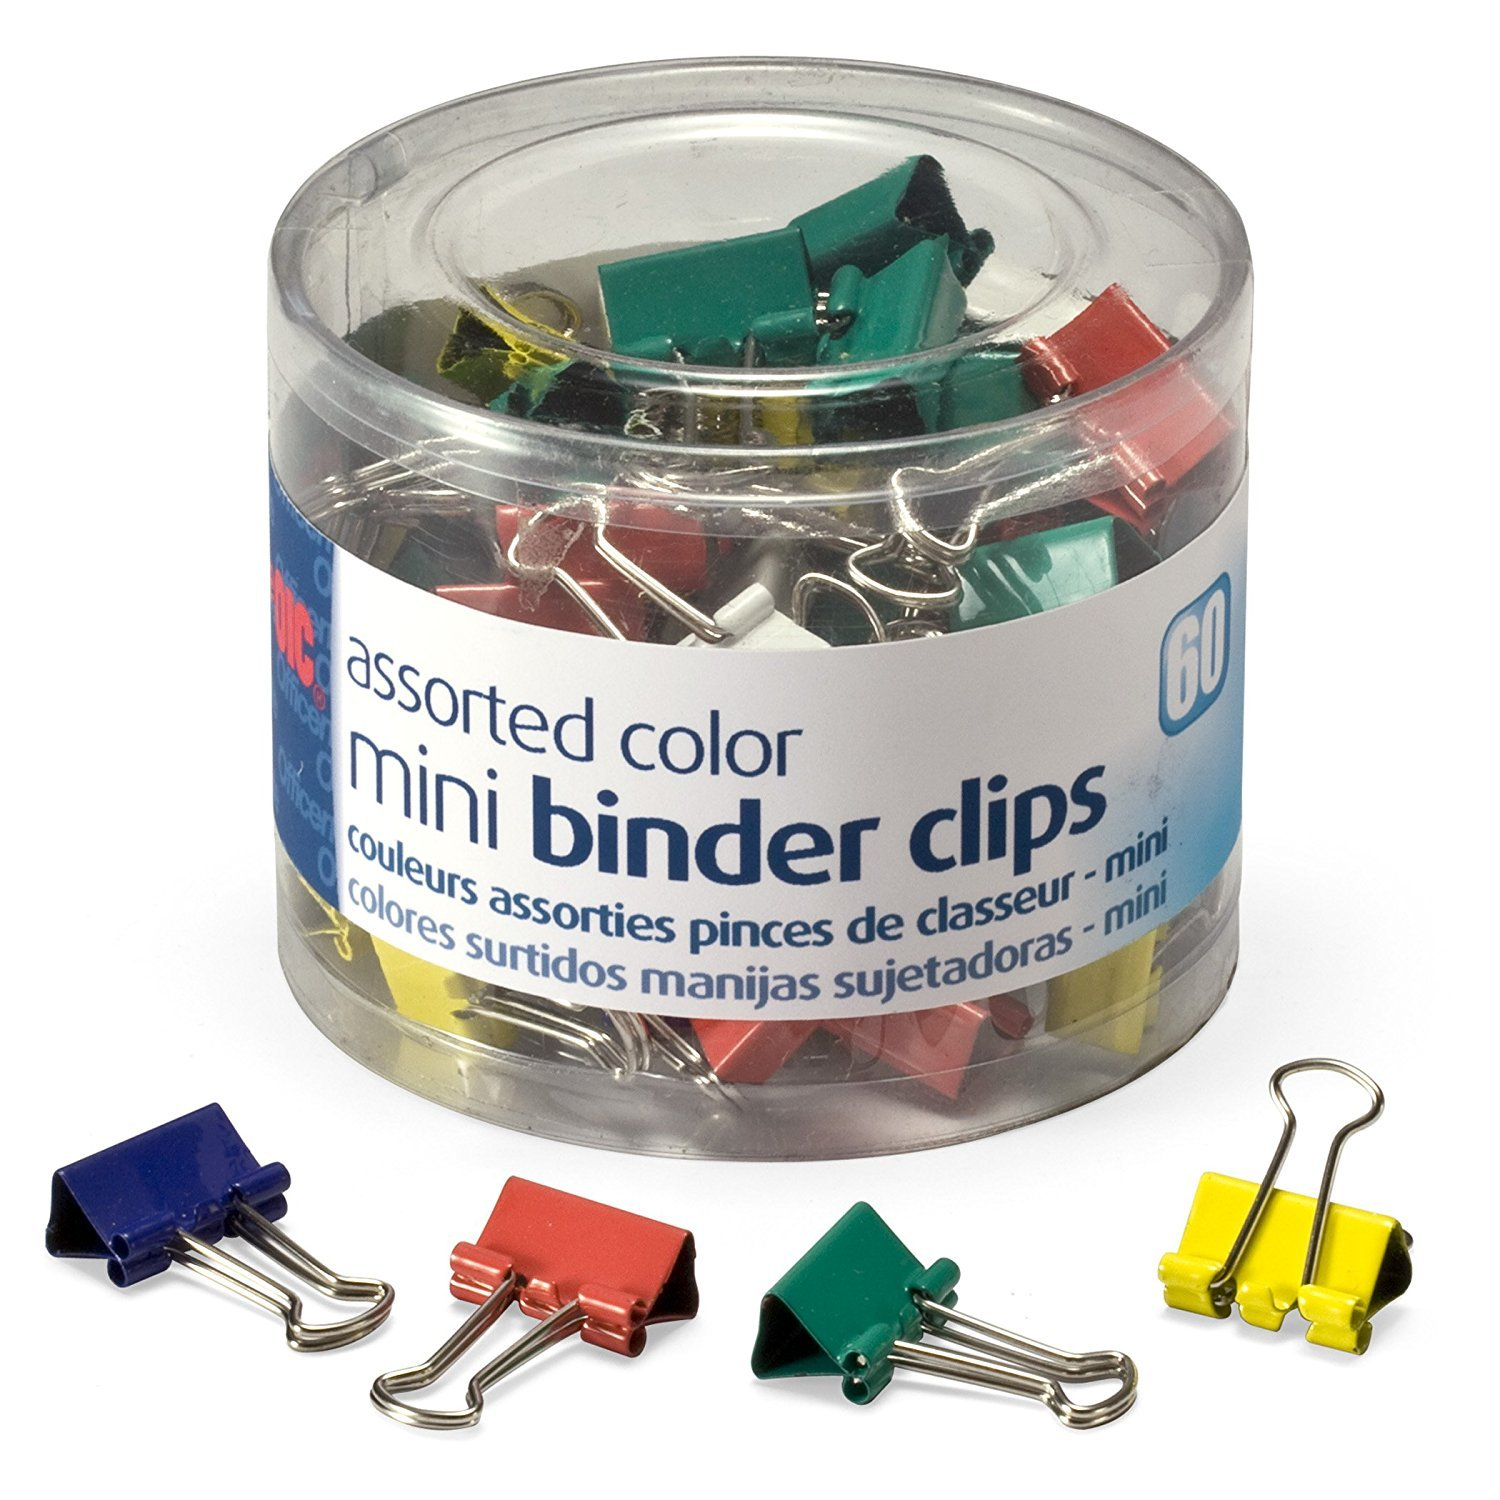 Amazon.com : Officemate OIC Mini Binder Clips, Assorted Colors, 60 Clips per Tub (31024) PACK OF 3 (180 Clips Total) : Office Products